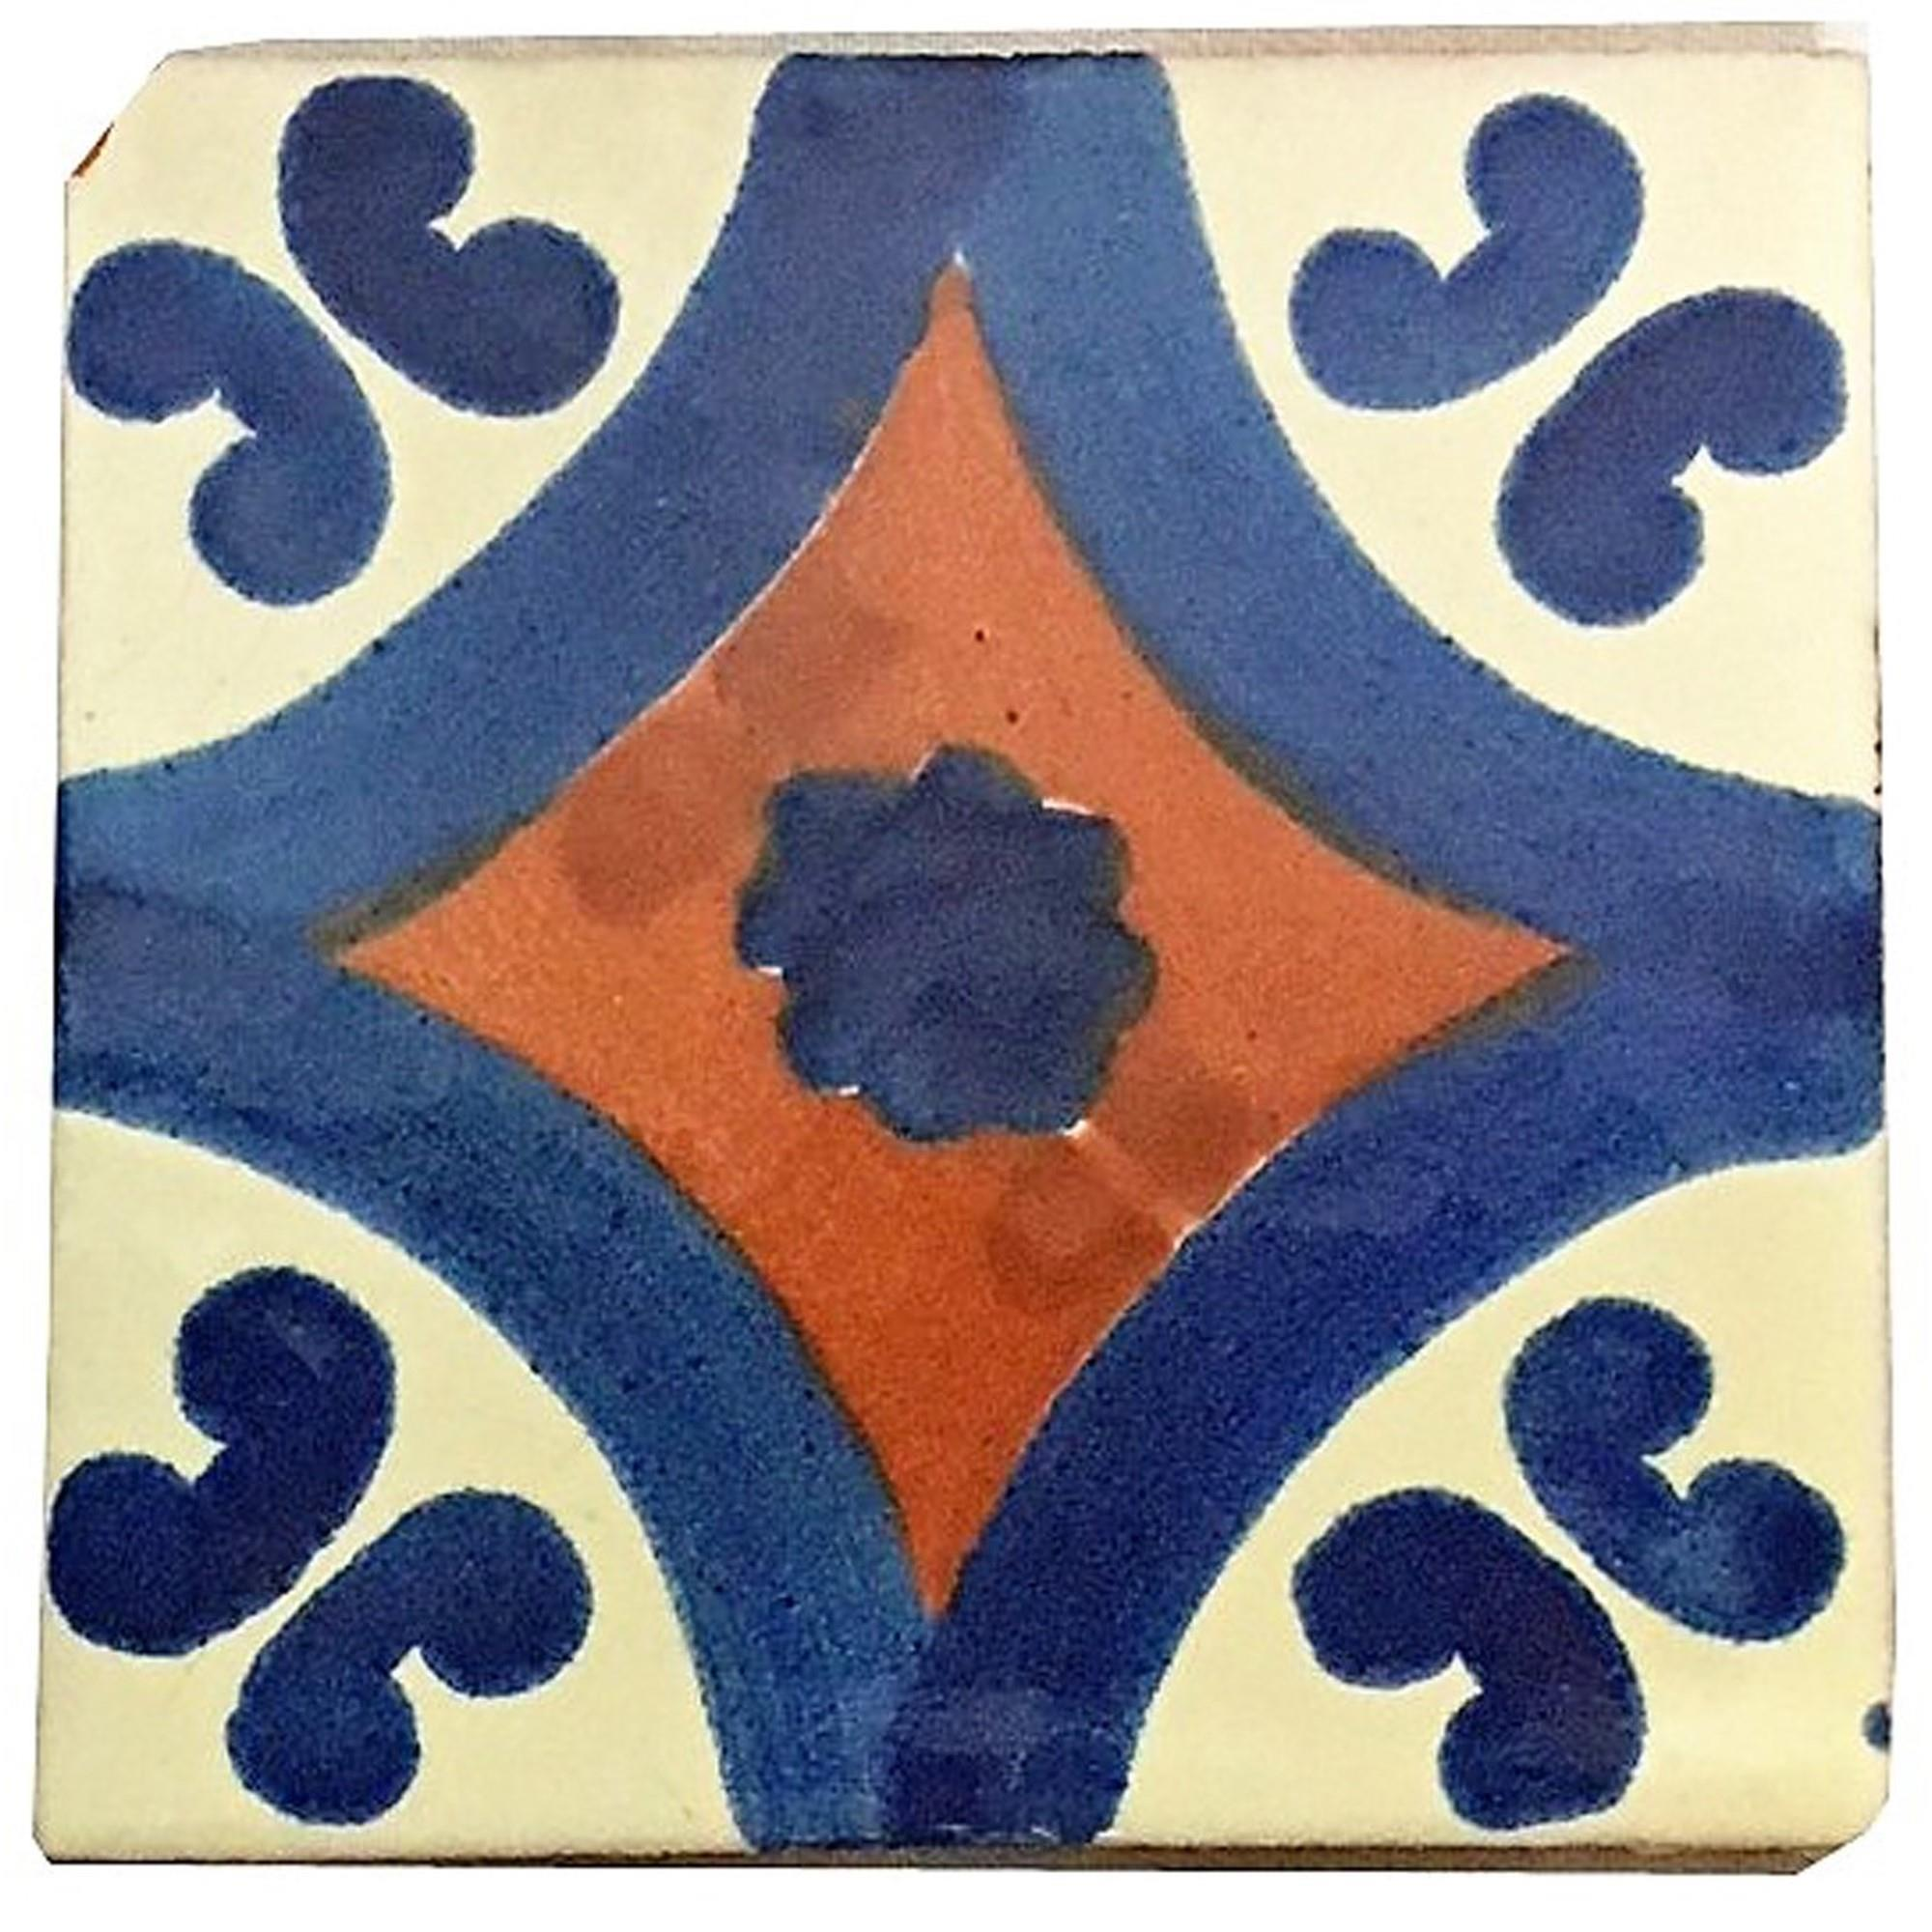 Hand Painted Coaster Tiles